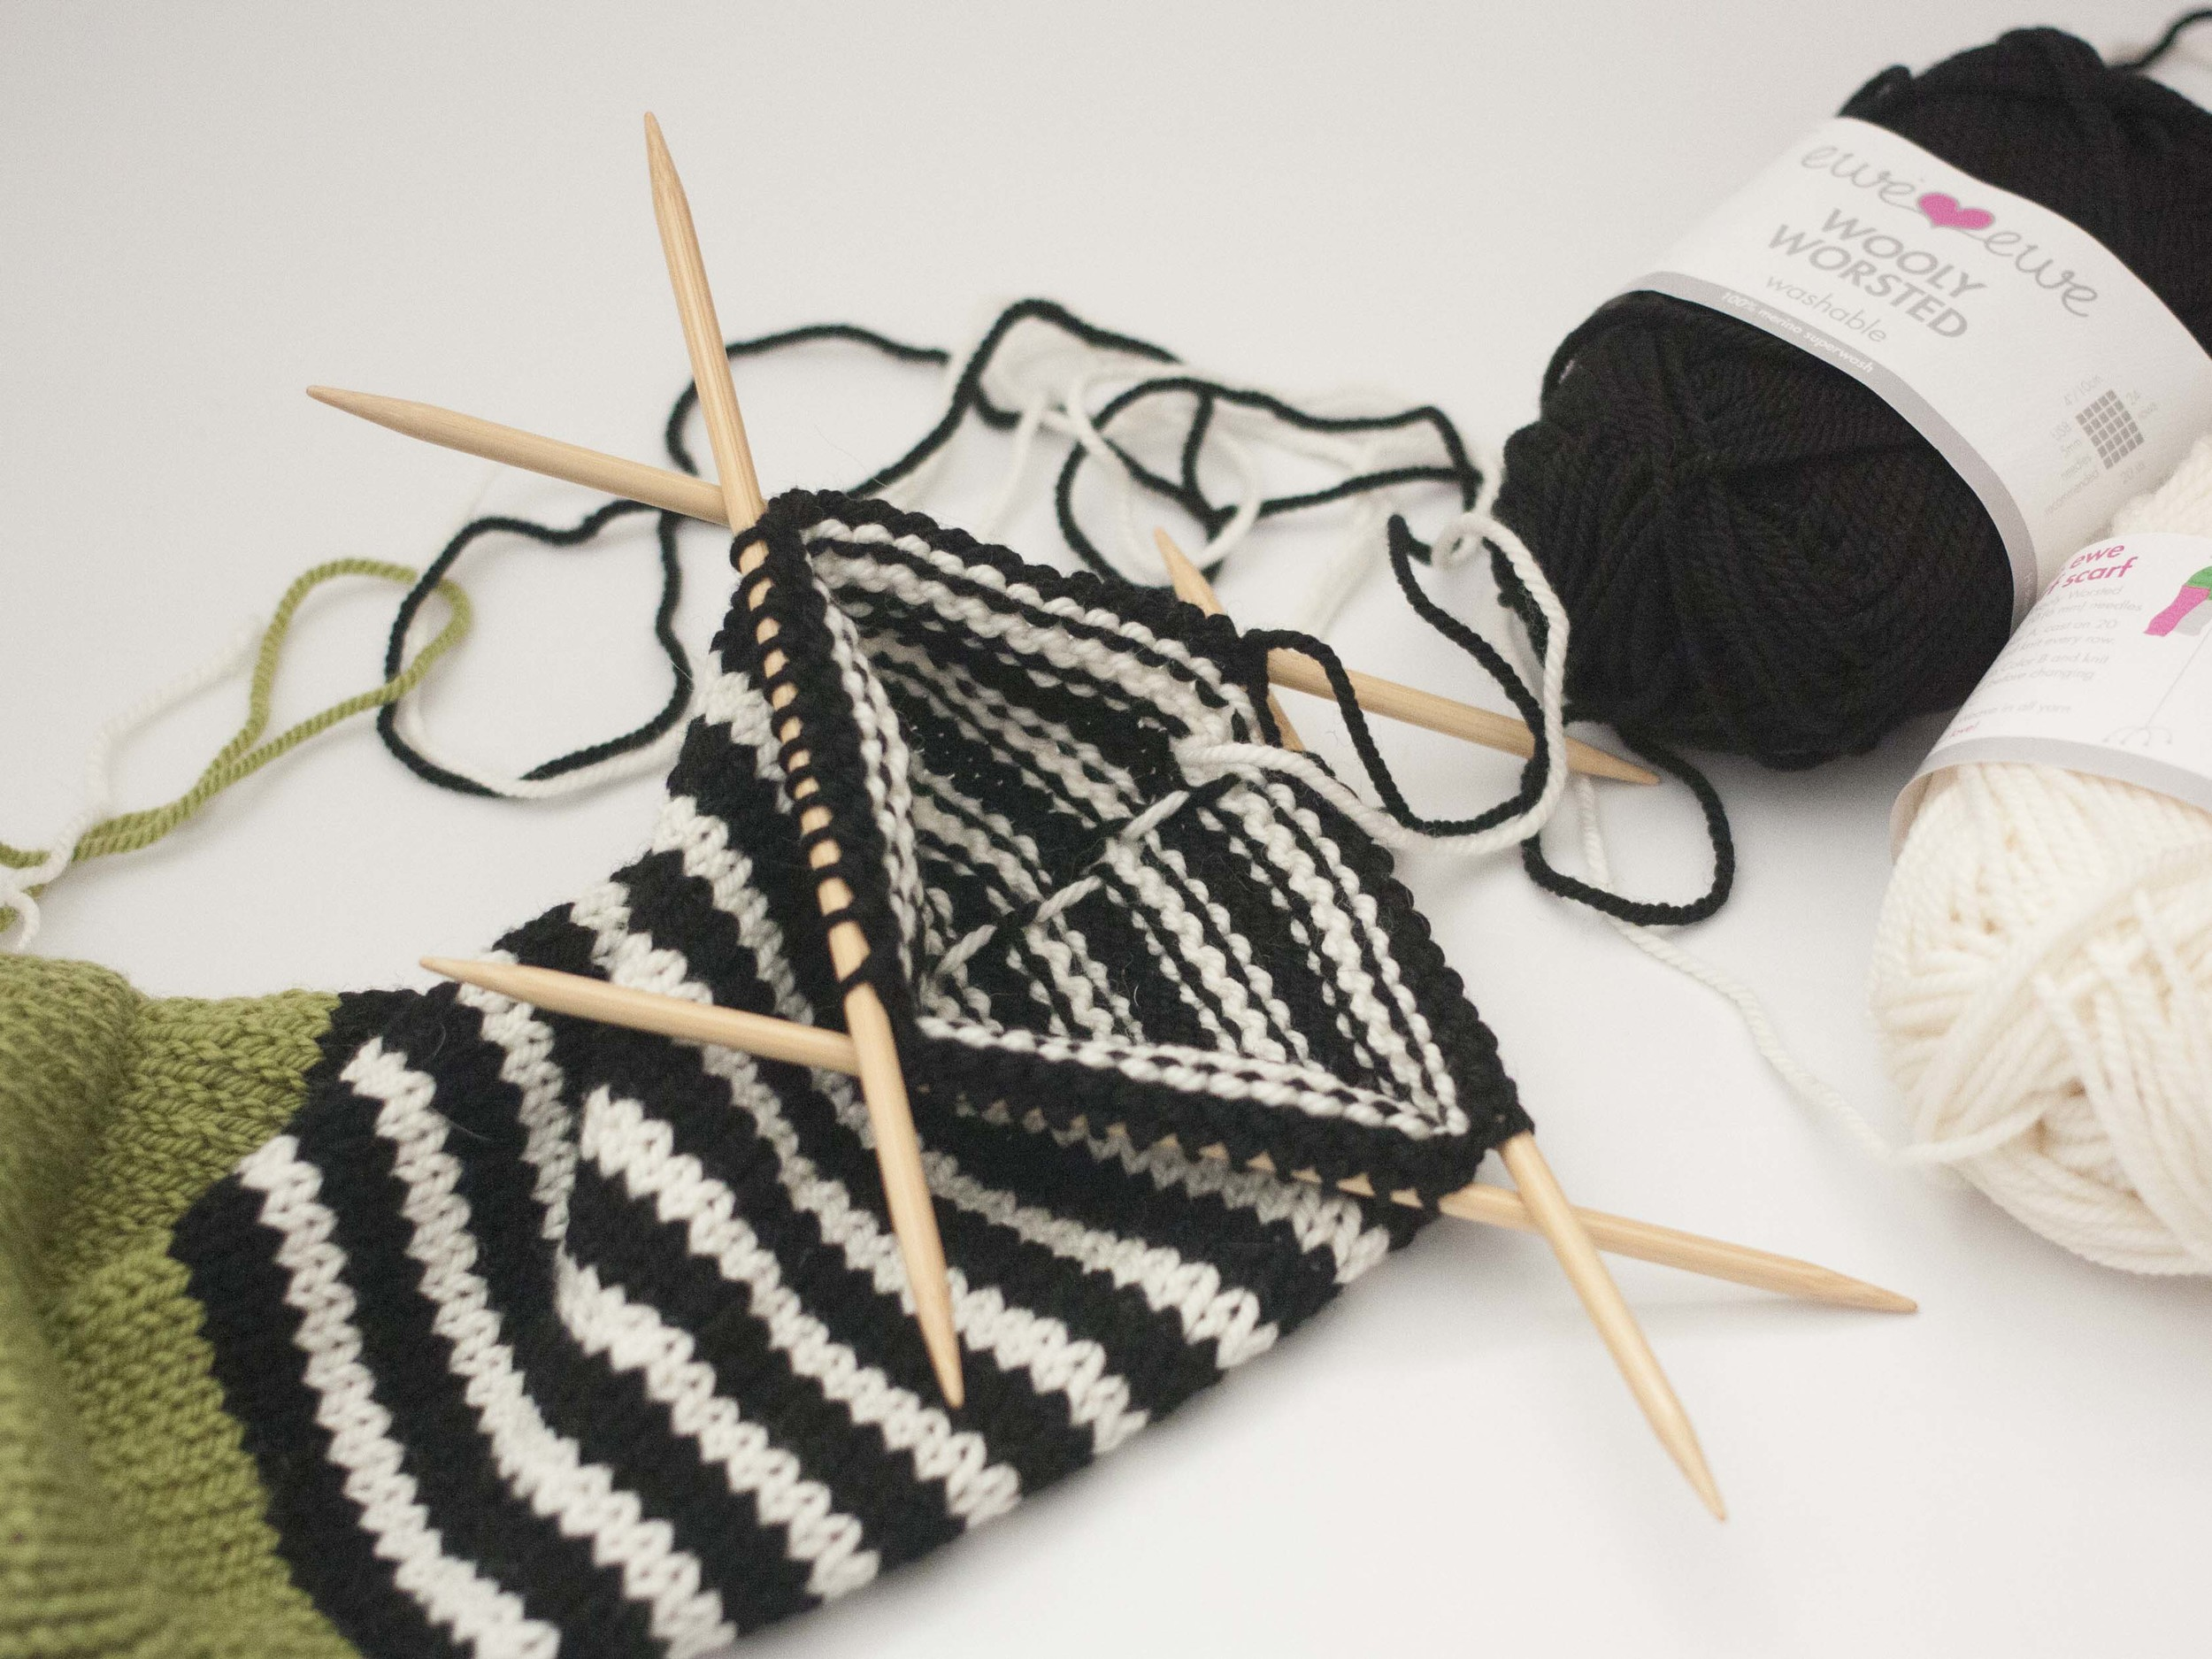 carrying colors while knitting stripes